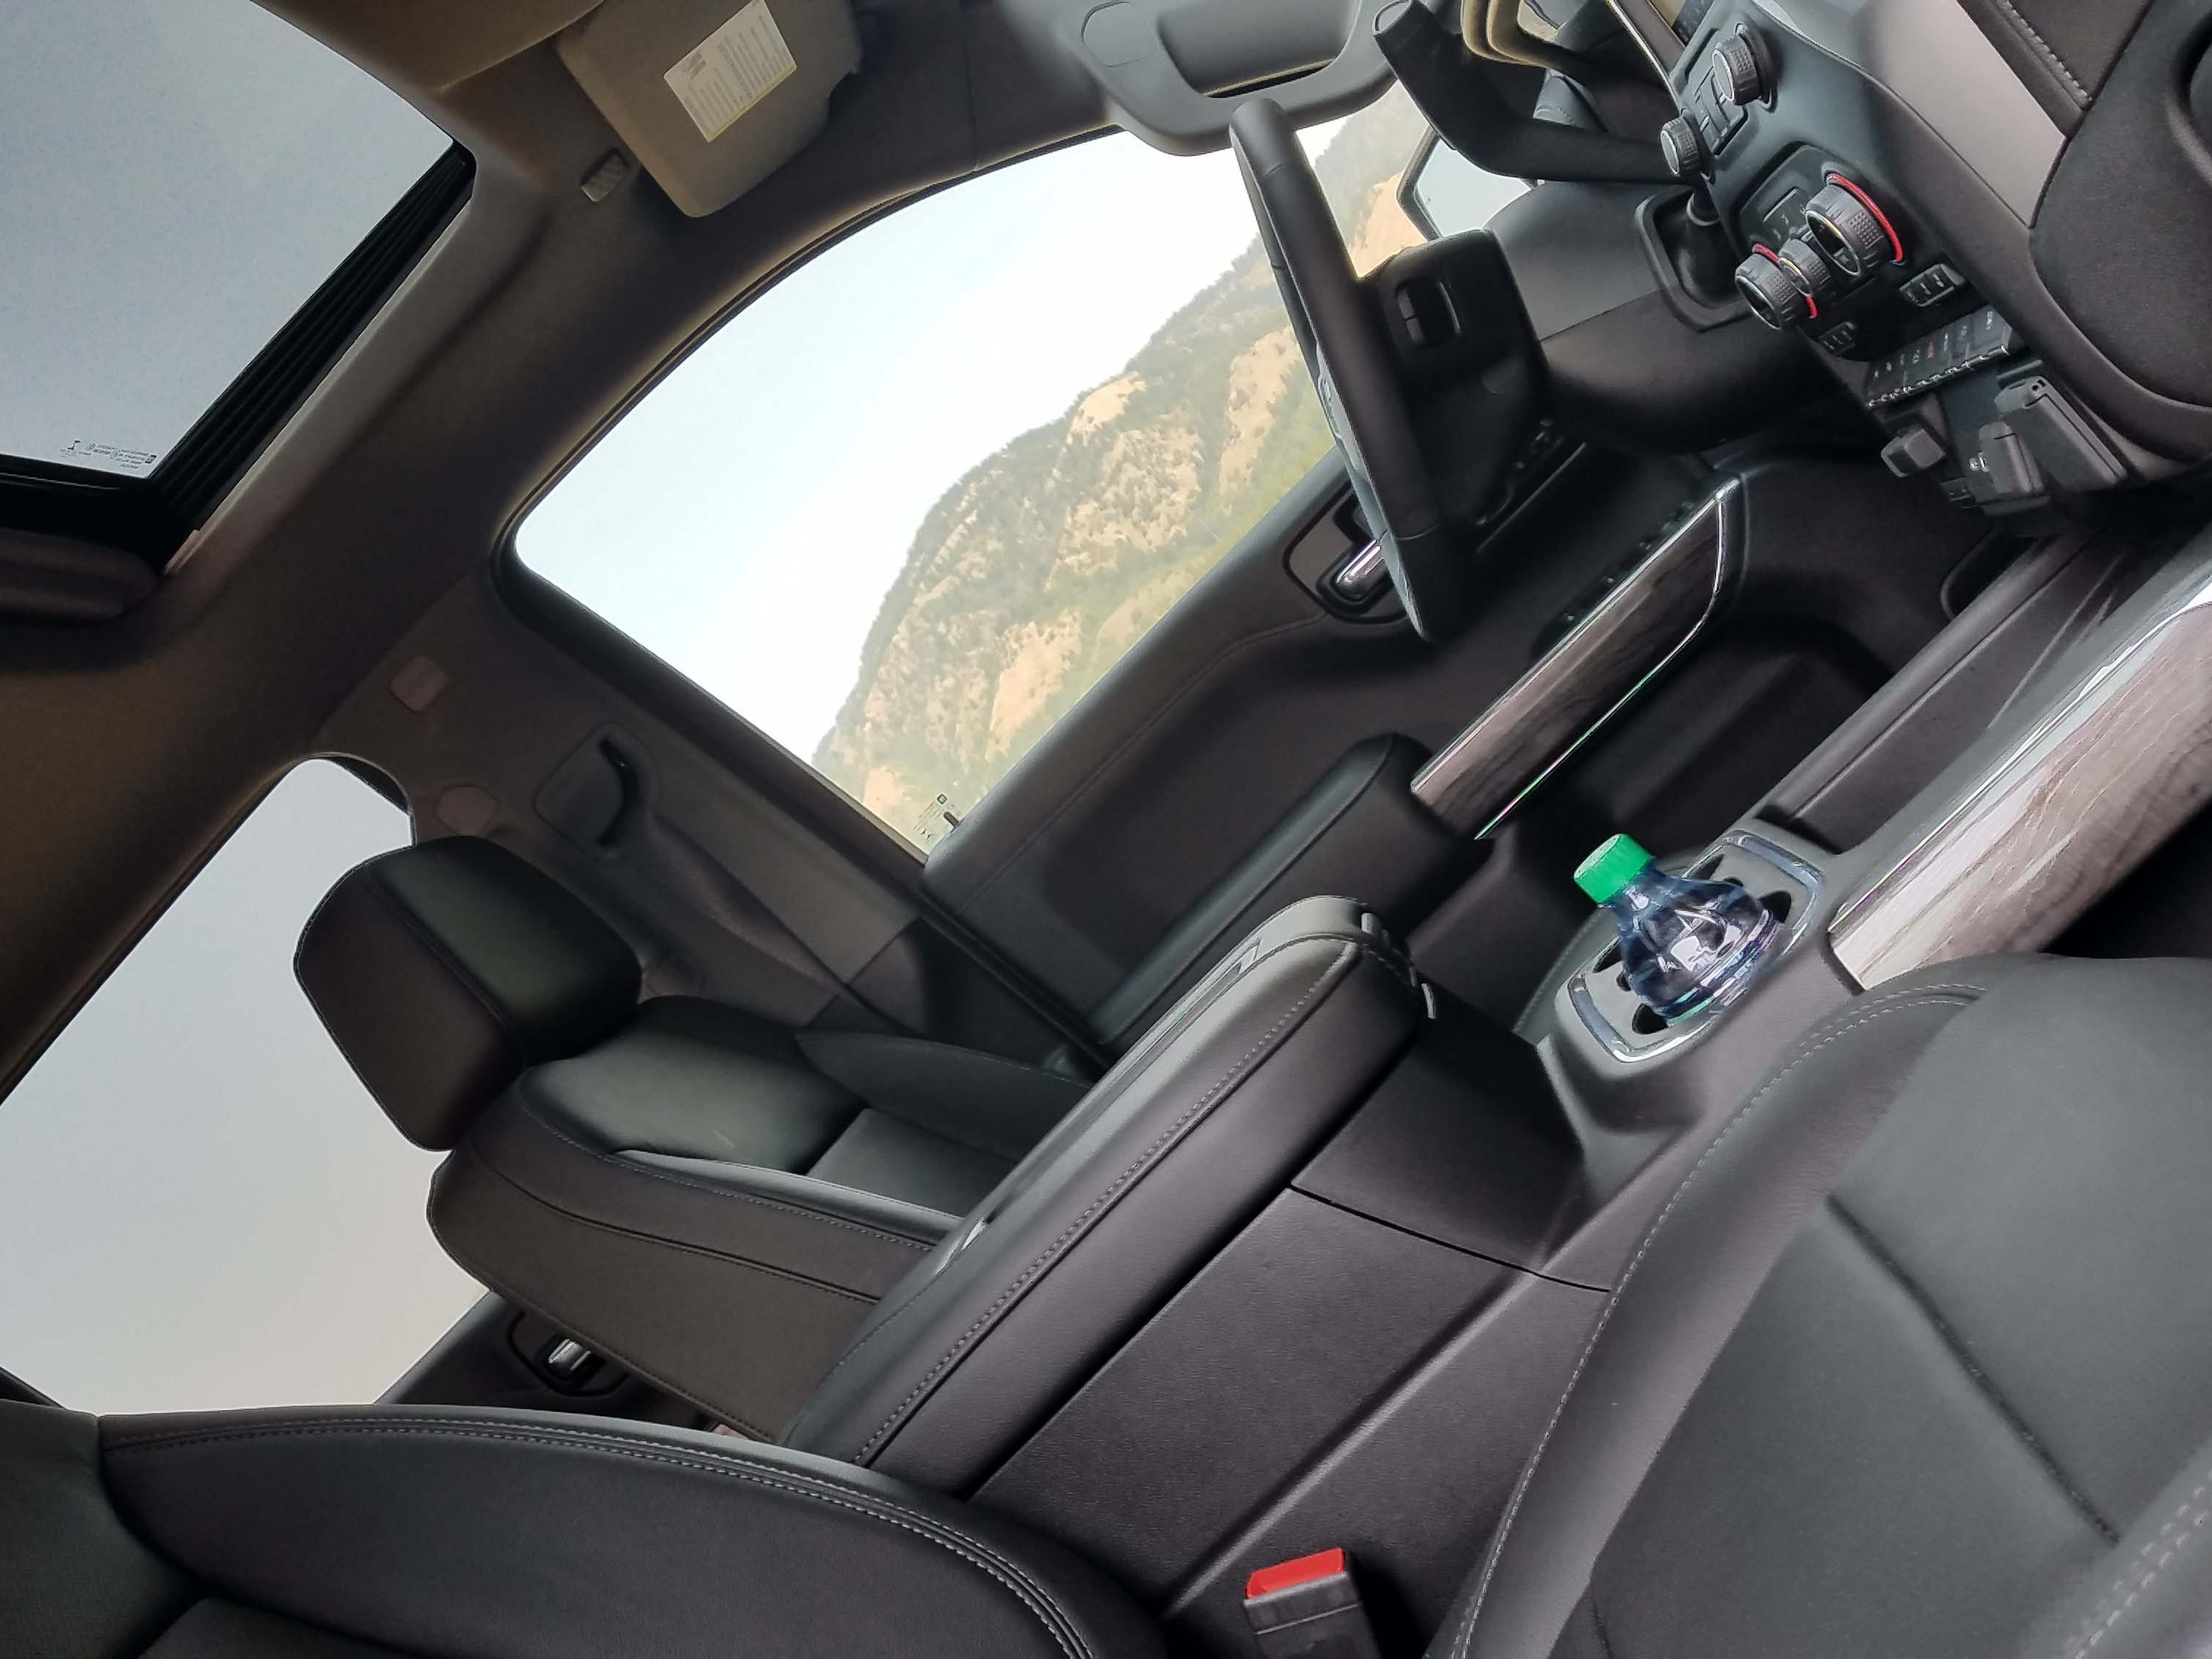 A sunroof is offered on the 2019 Chevy Silverado.